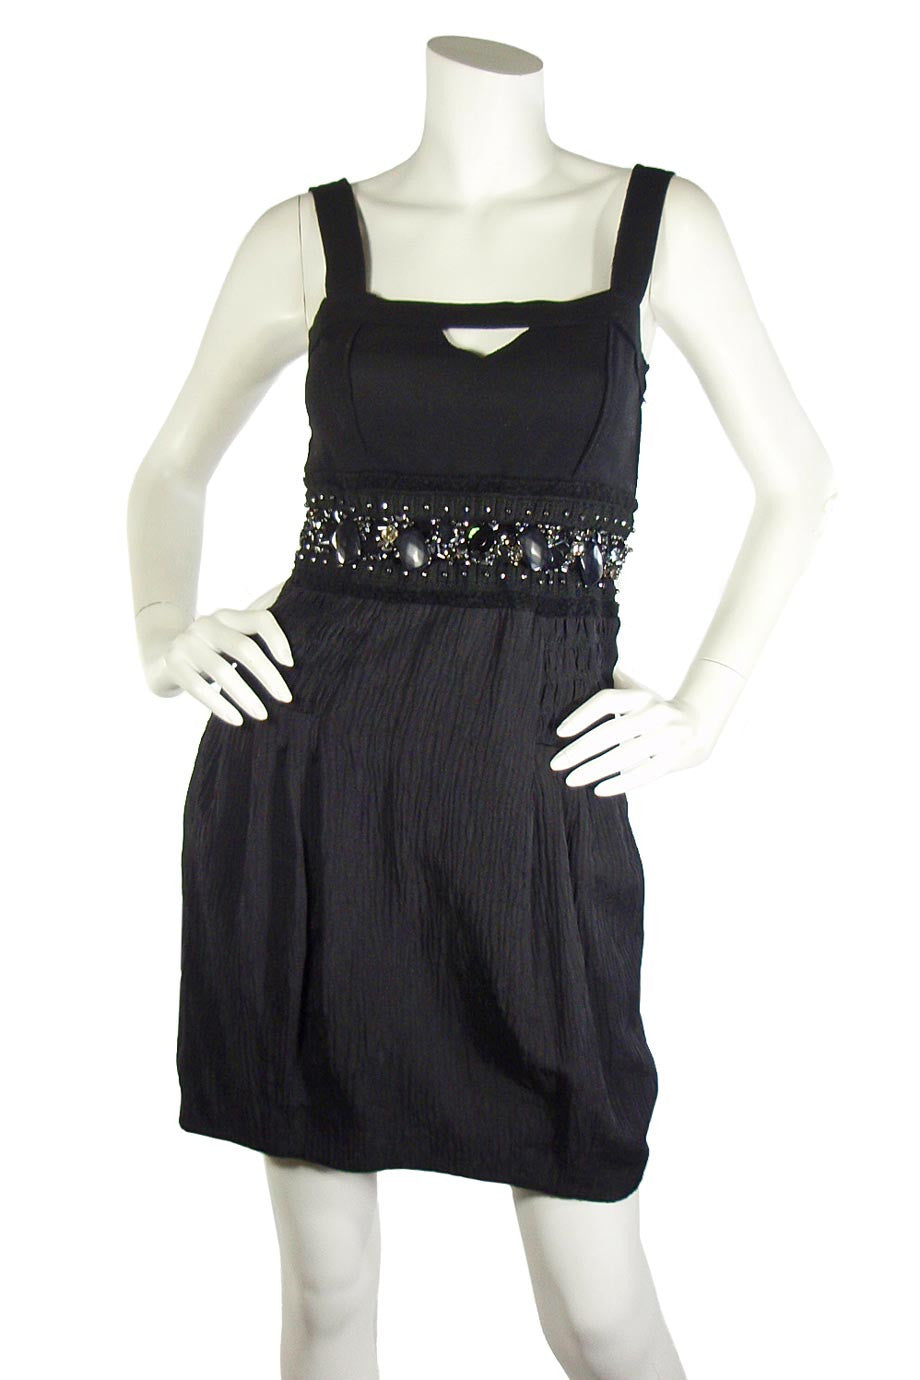 Jessica by Christopher L Beaded Black Cocktail Dress / Sz 4-Style Therapy